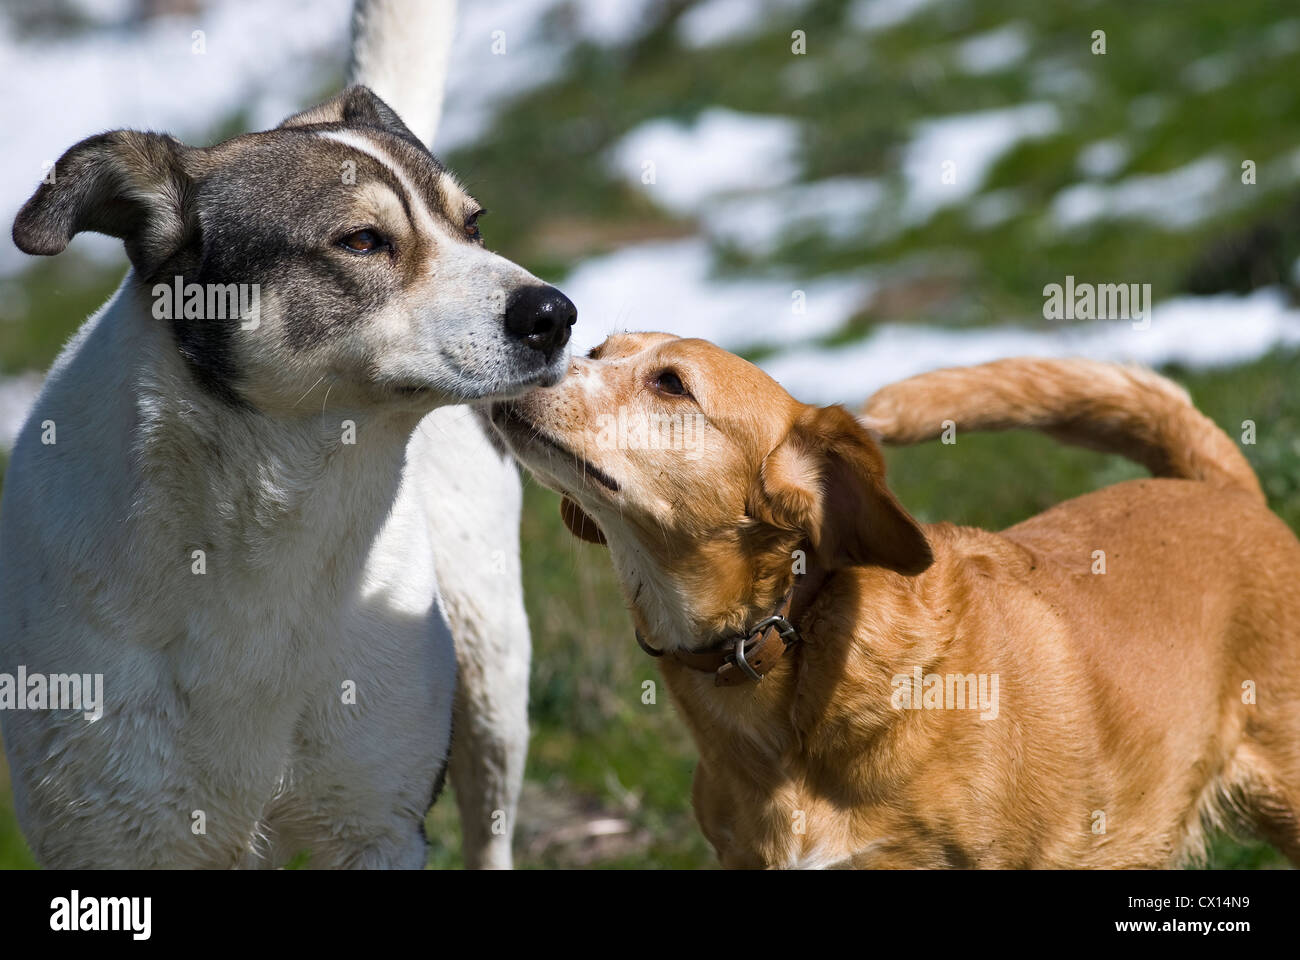 Encounter of two dogs sniffing at each other - with snow fields in the background Stock Photo